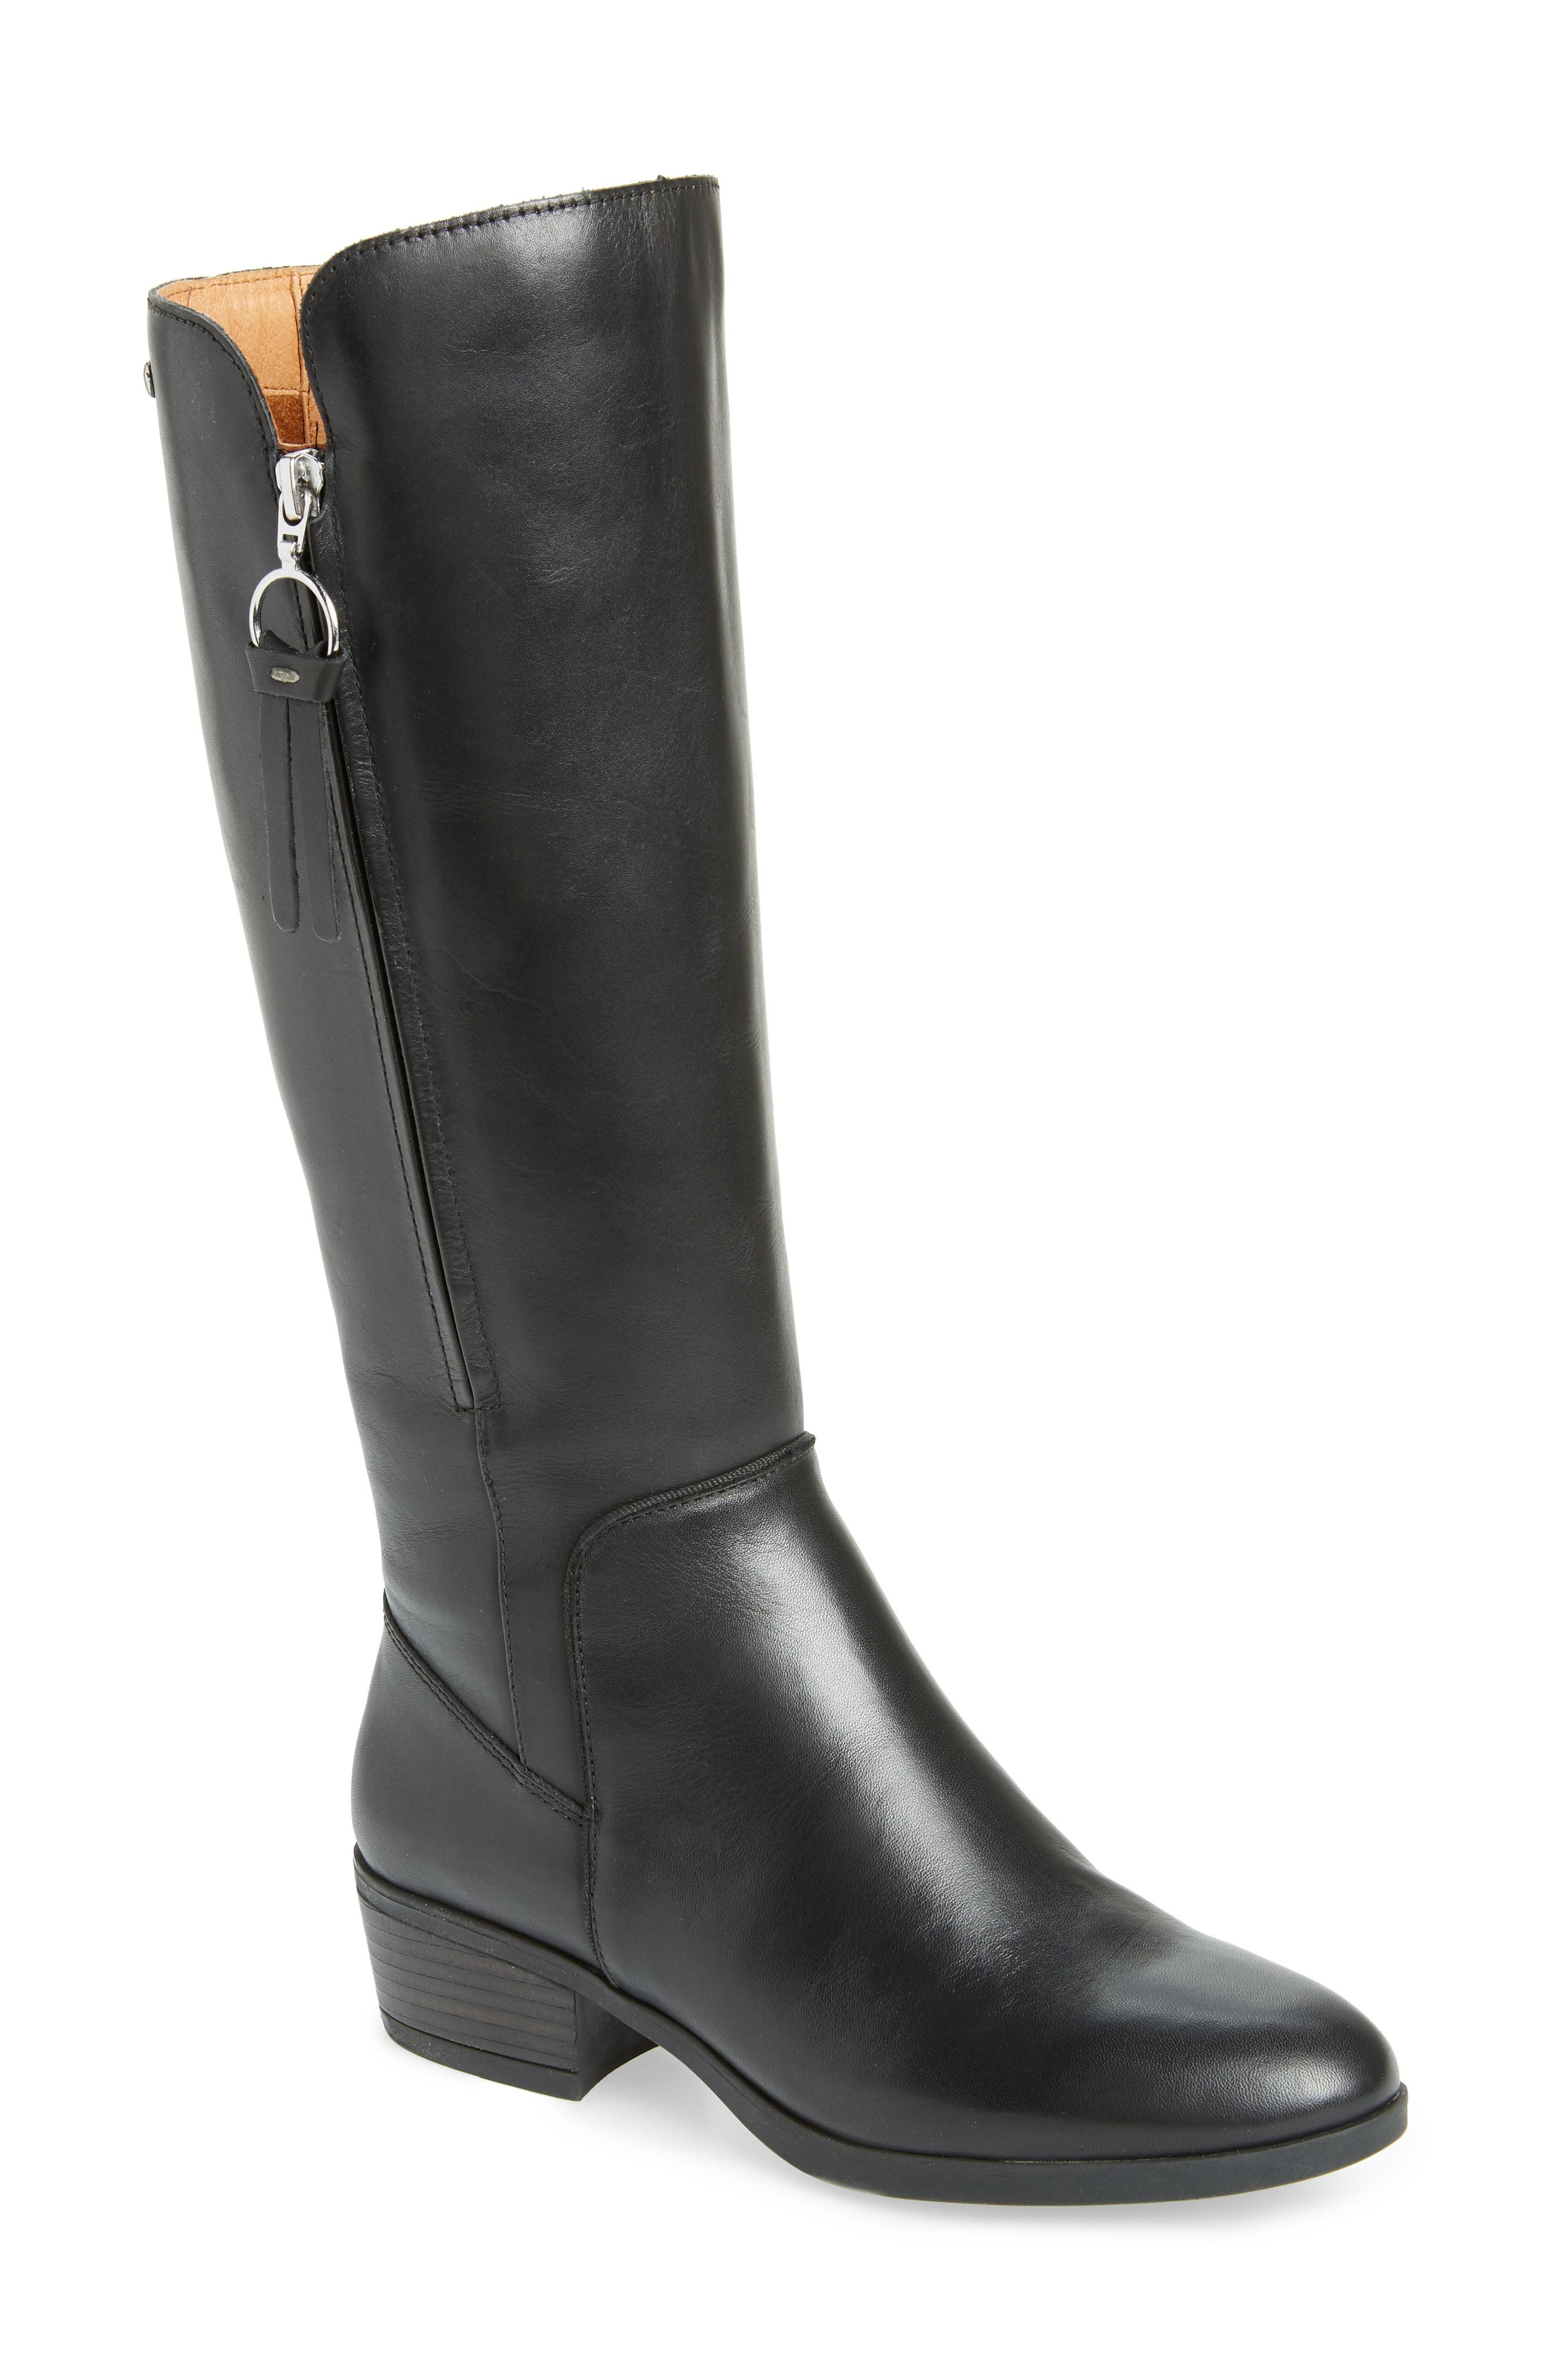 PIKOLINOS Daroca Knee High Boot, Main, color, BLACK LEATHER